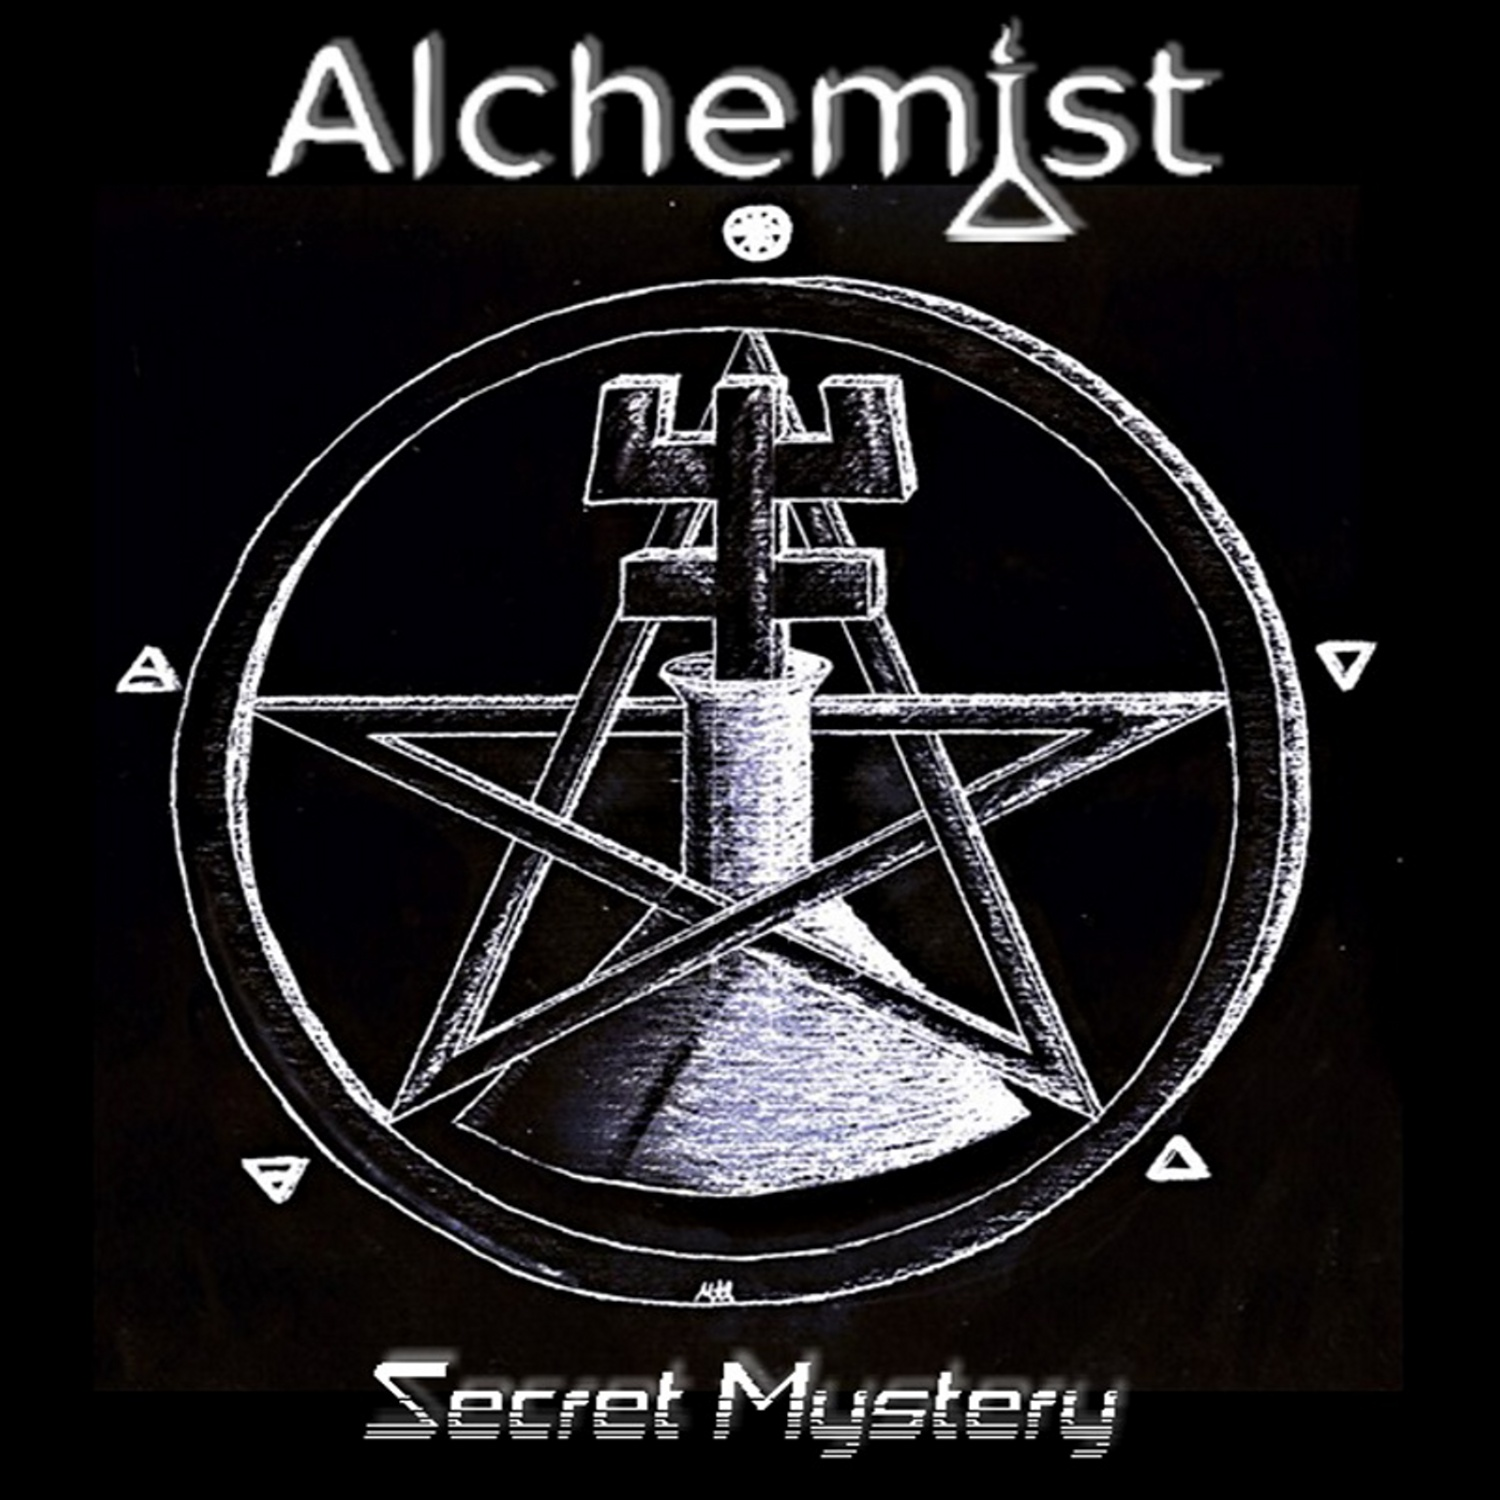 Alchemist - Secret Mystery (2016)